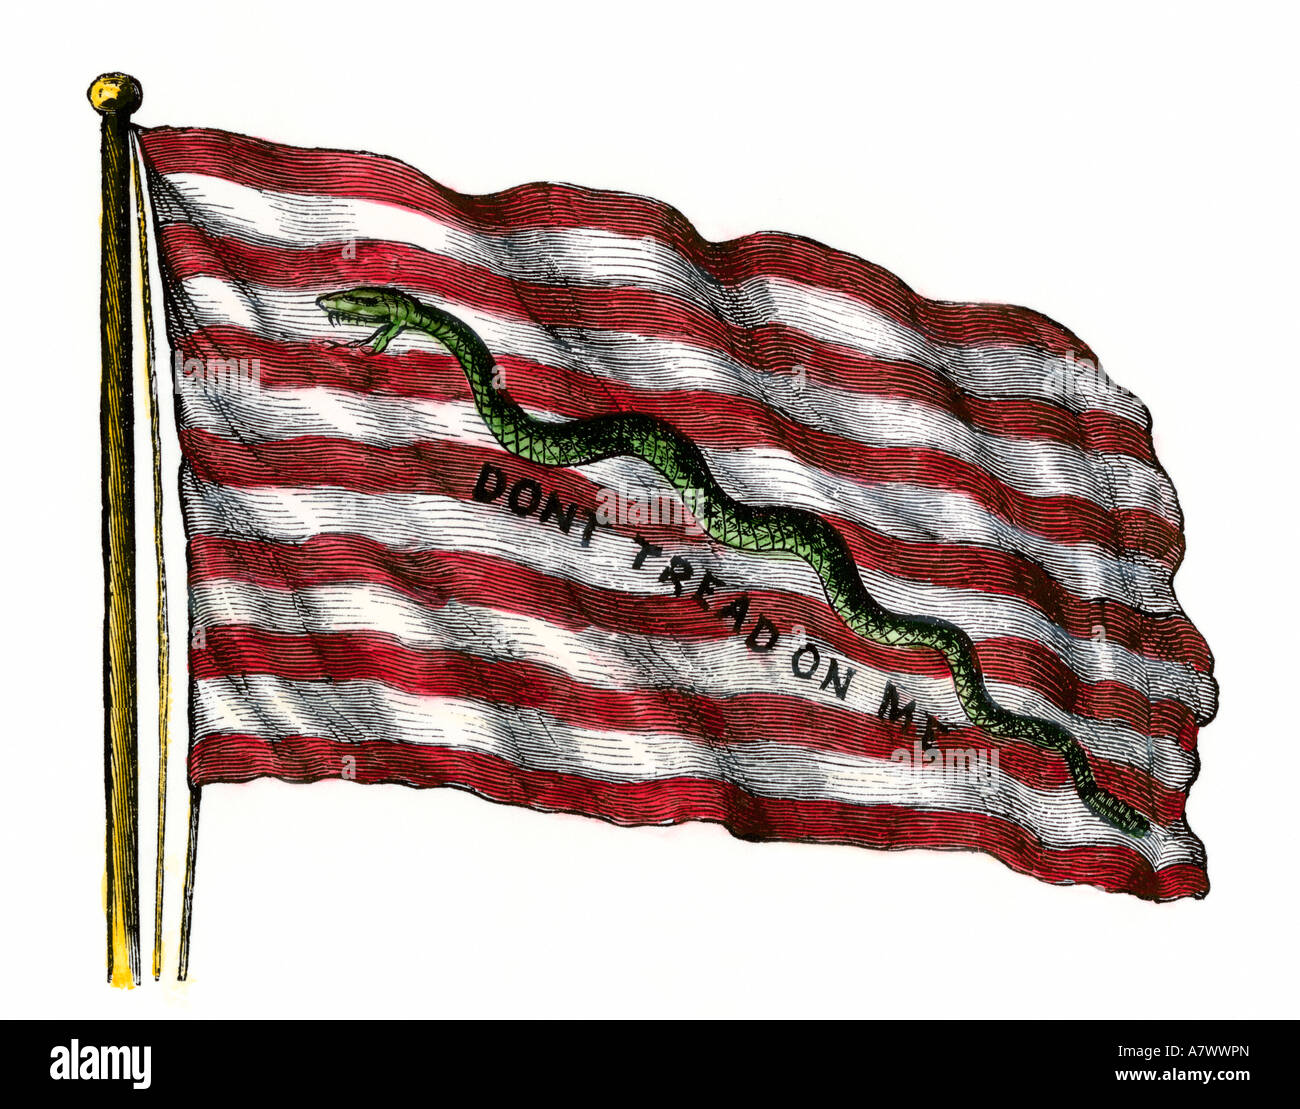 Colonists Rattlesnake Flag with Dont Tread on Me slogan in its naval jack form American Revolution. Hand-colored - Stock Image